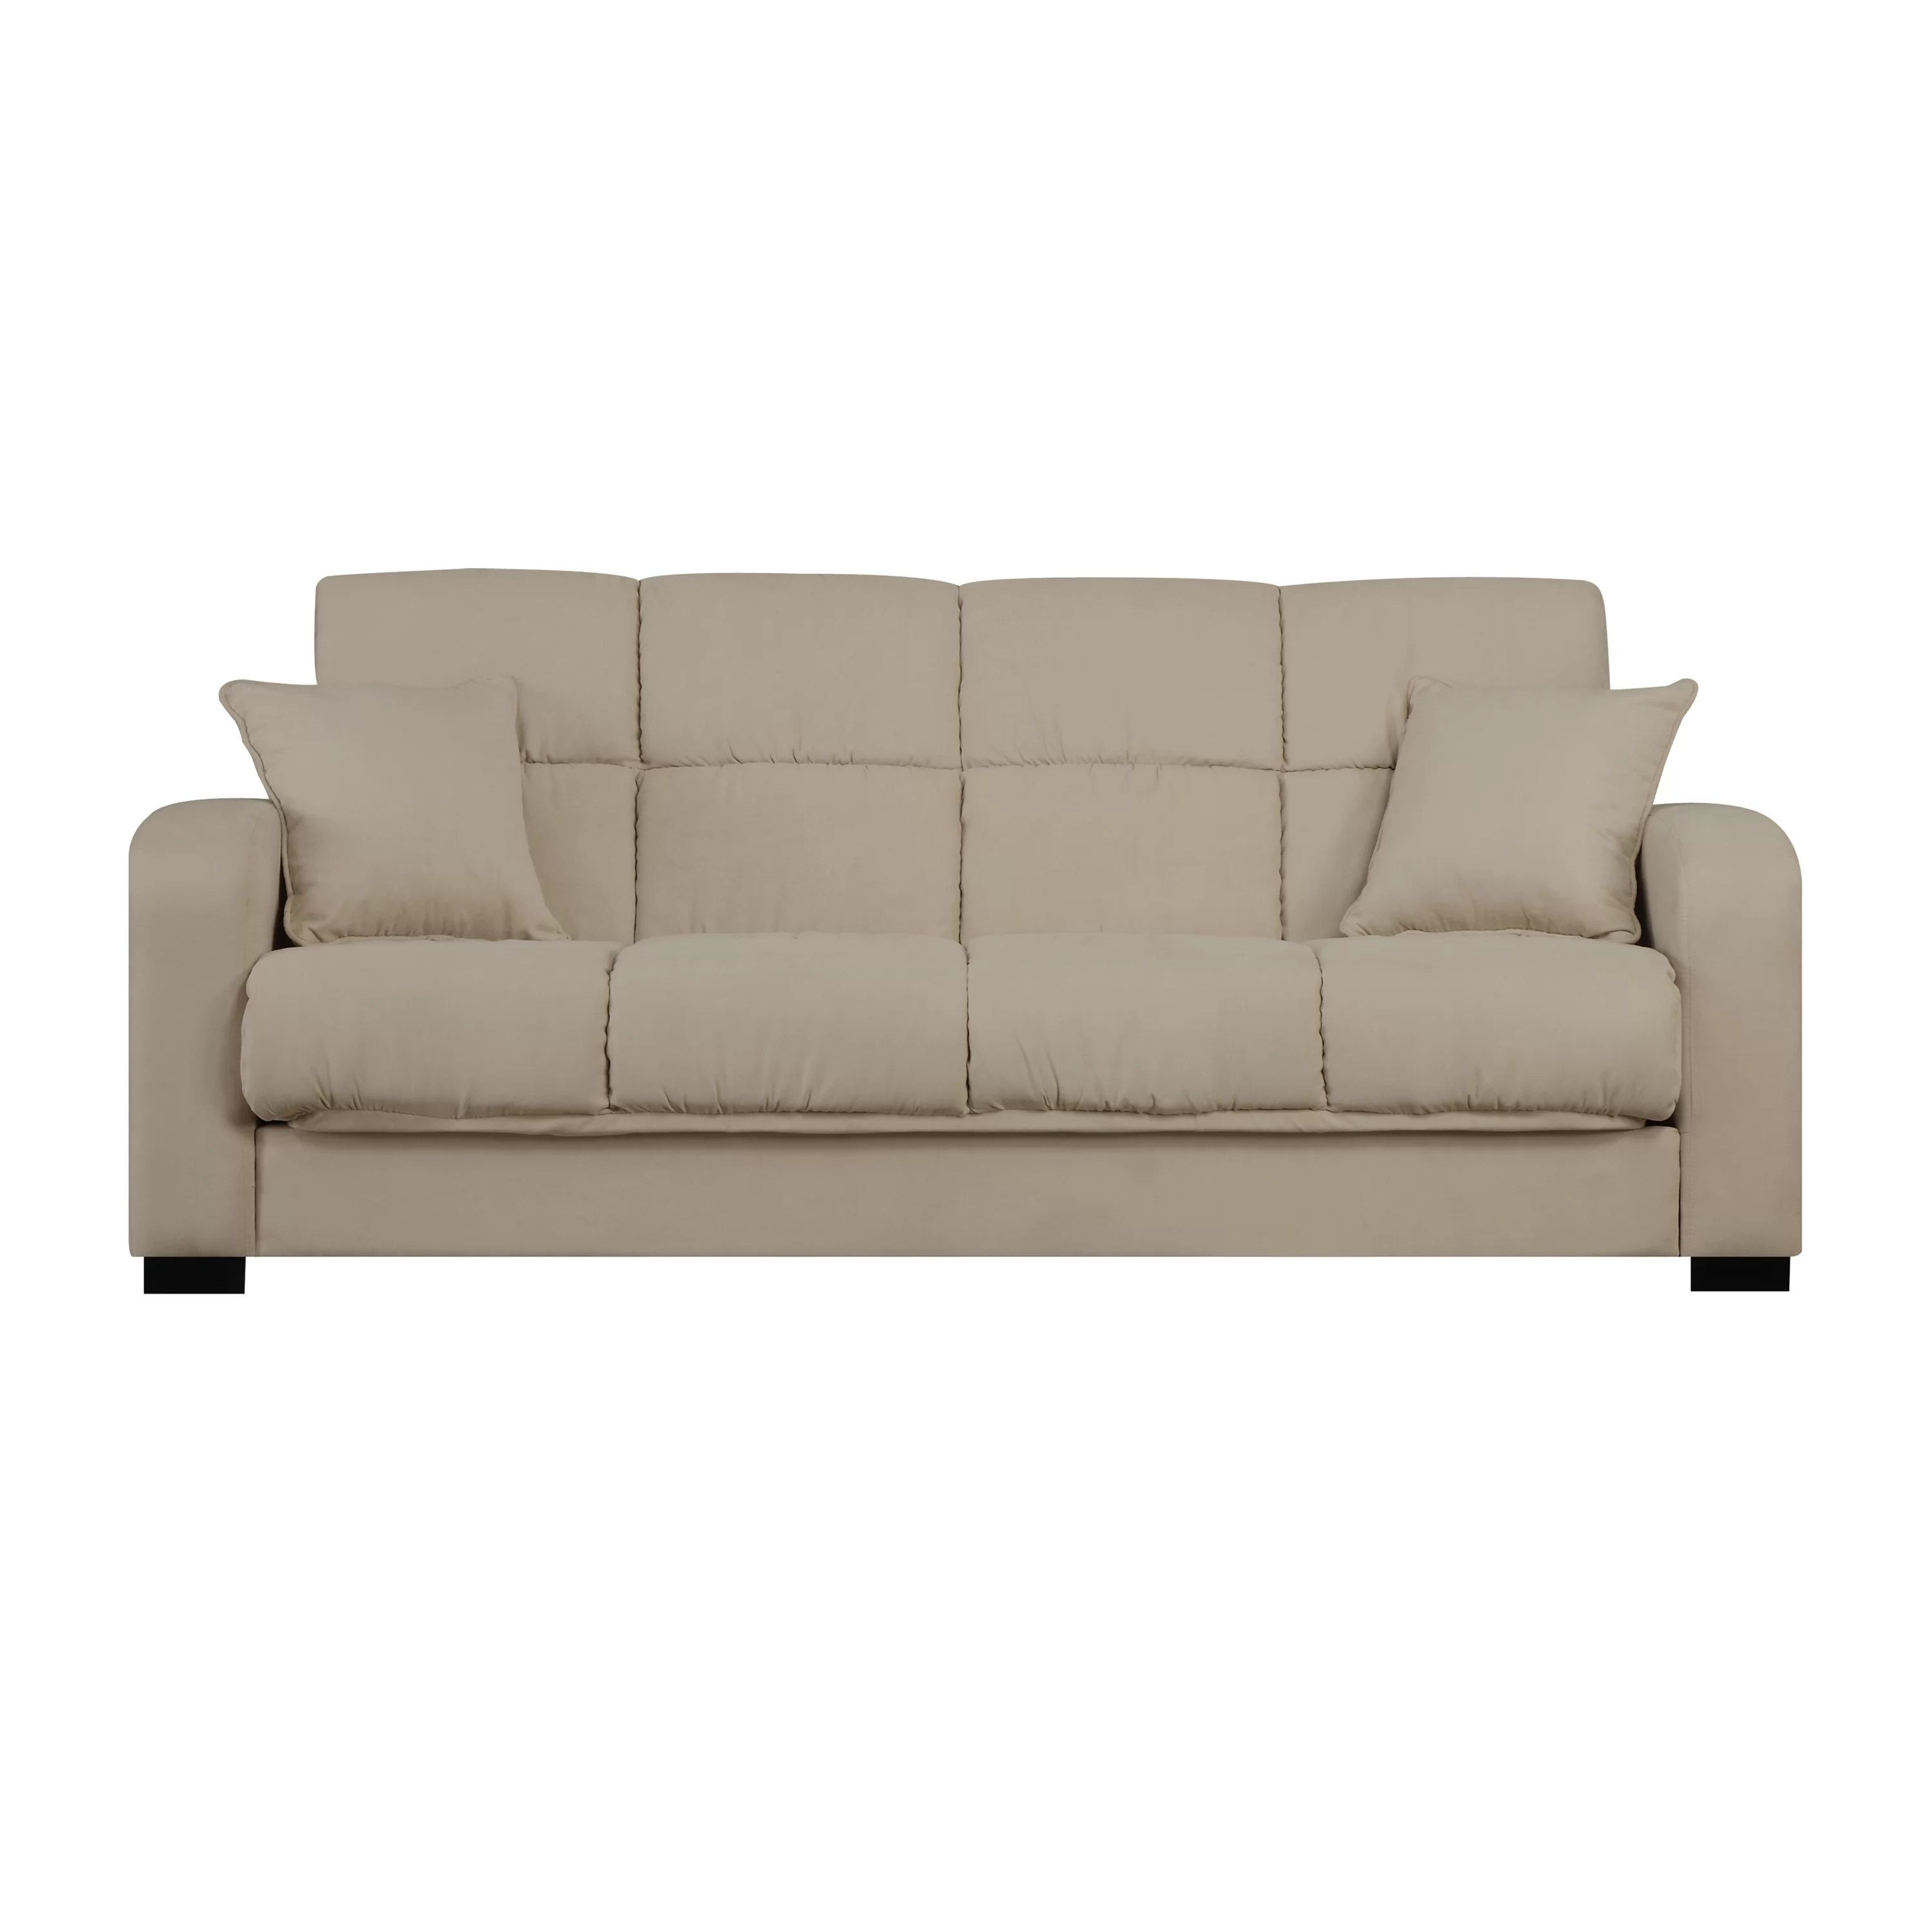 wayfair sleeper sofa full design pictures for living room andover mills richardson convertible